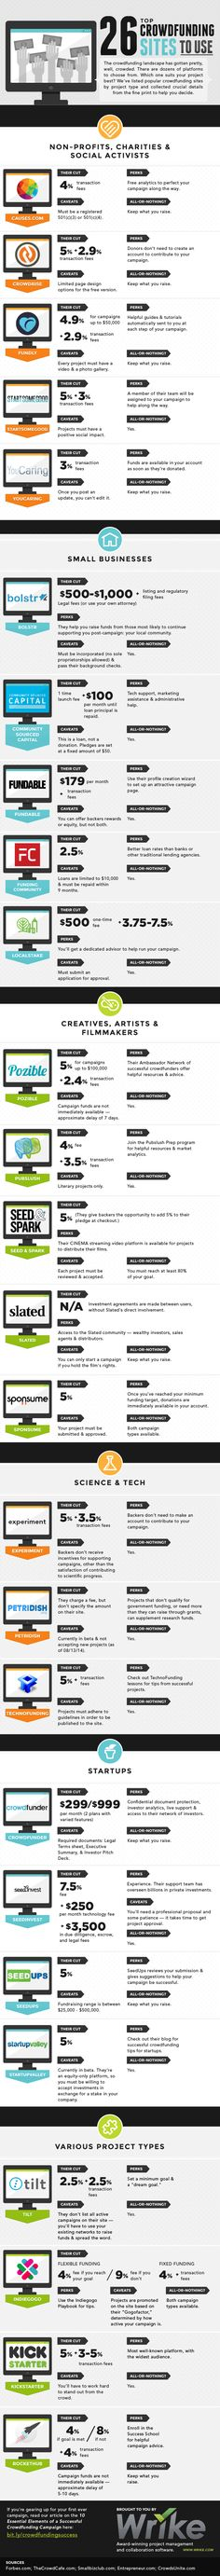 Definitive Guide to Crowdfunding Sites  [by Wrike -- via Tipsographic] #tipsographic